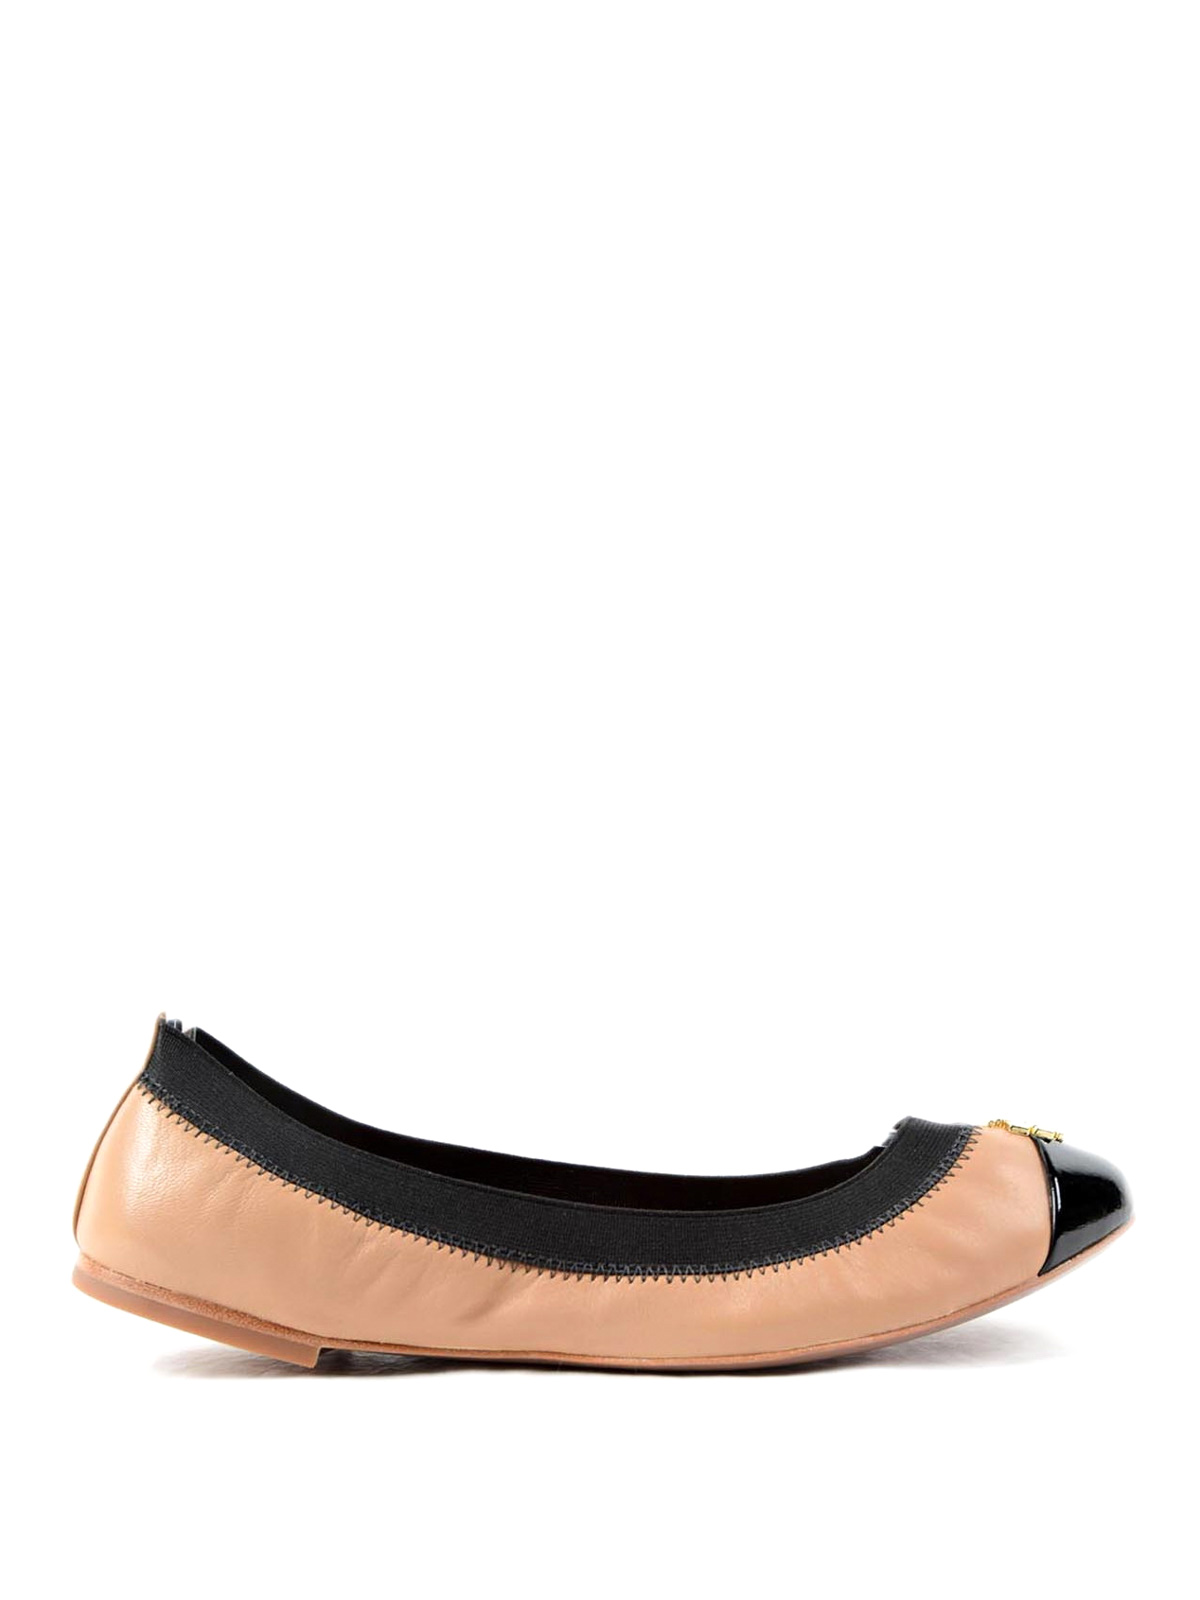 patent leather toe jolie ballerinas by tory burch flat shoes ikrix. Black Bedroom Furniture Sets. Home Design Ideas